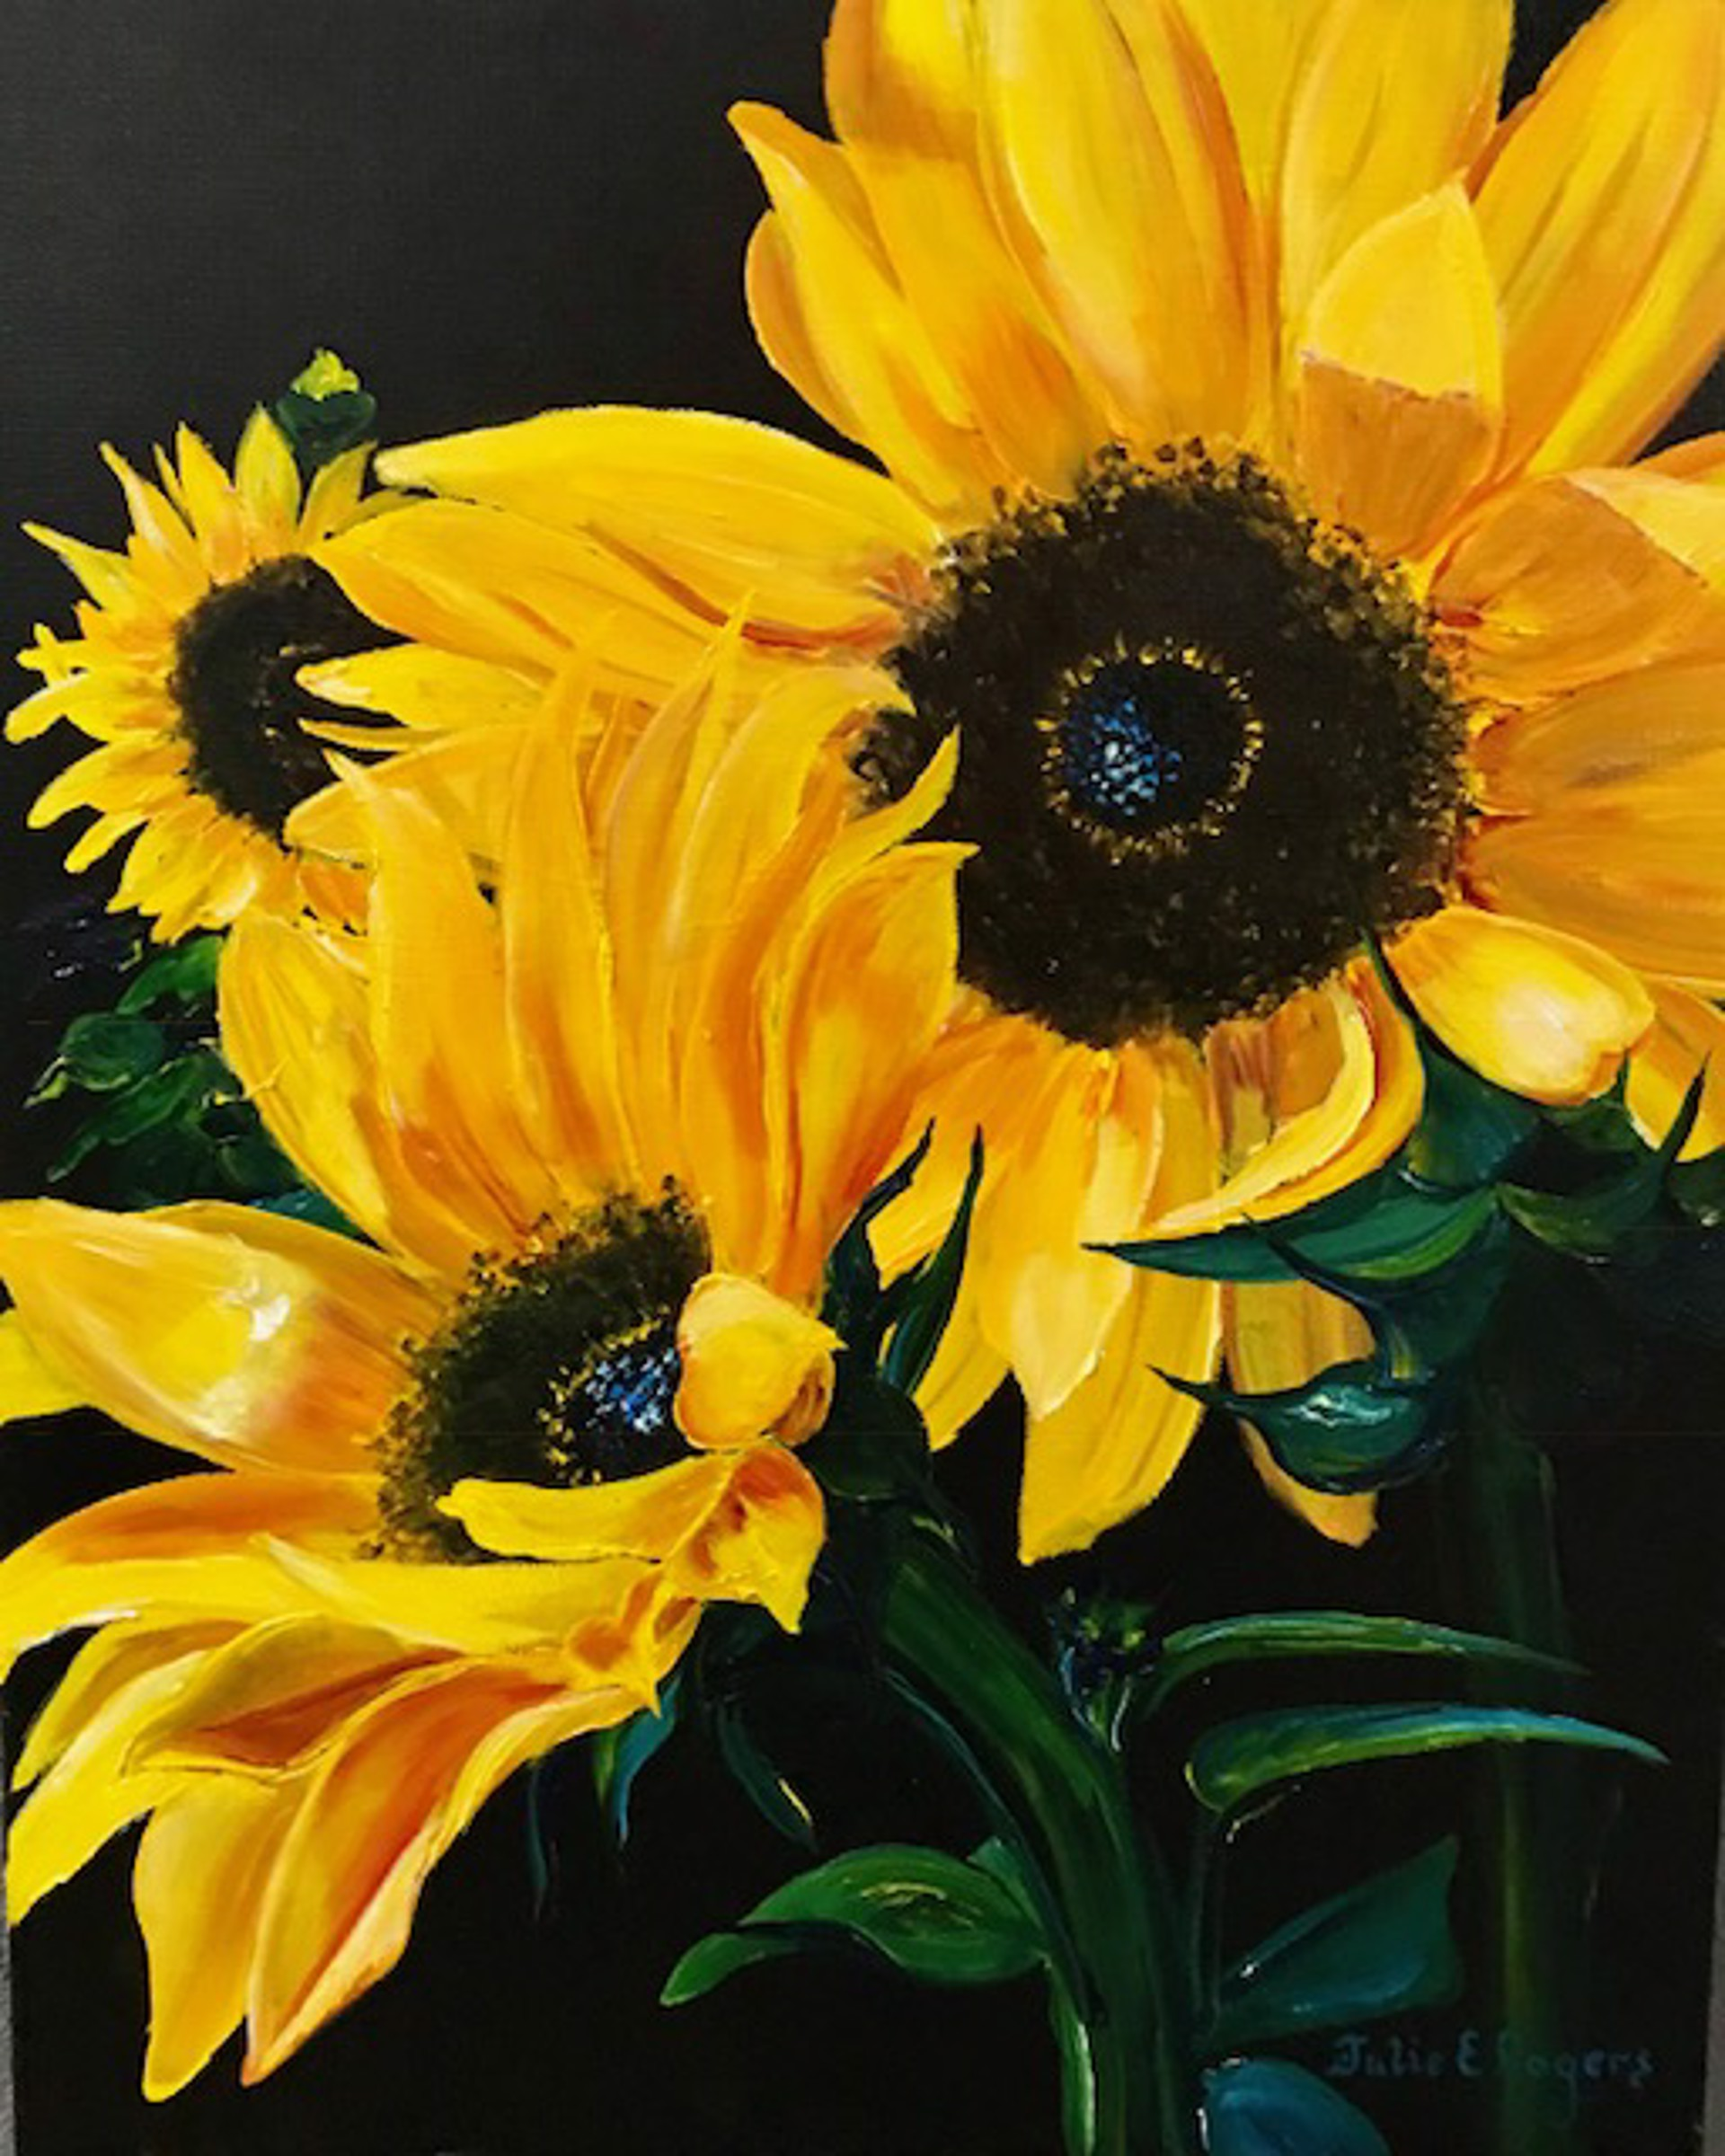 Sunflowers #3 by Julie Rogers